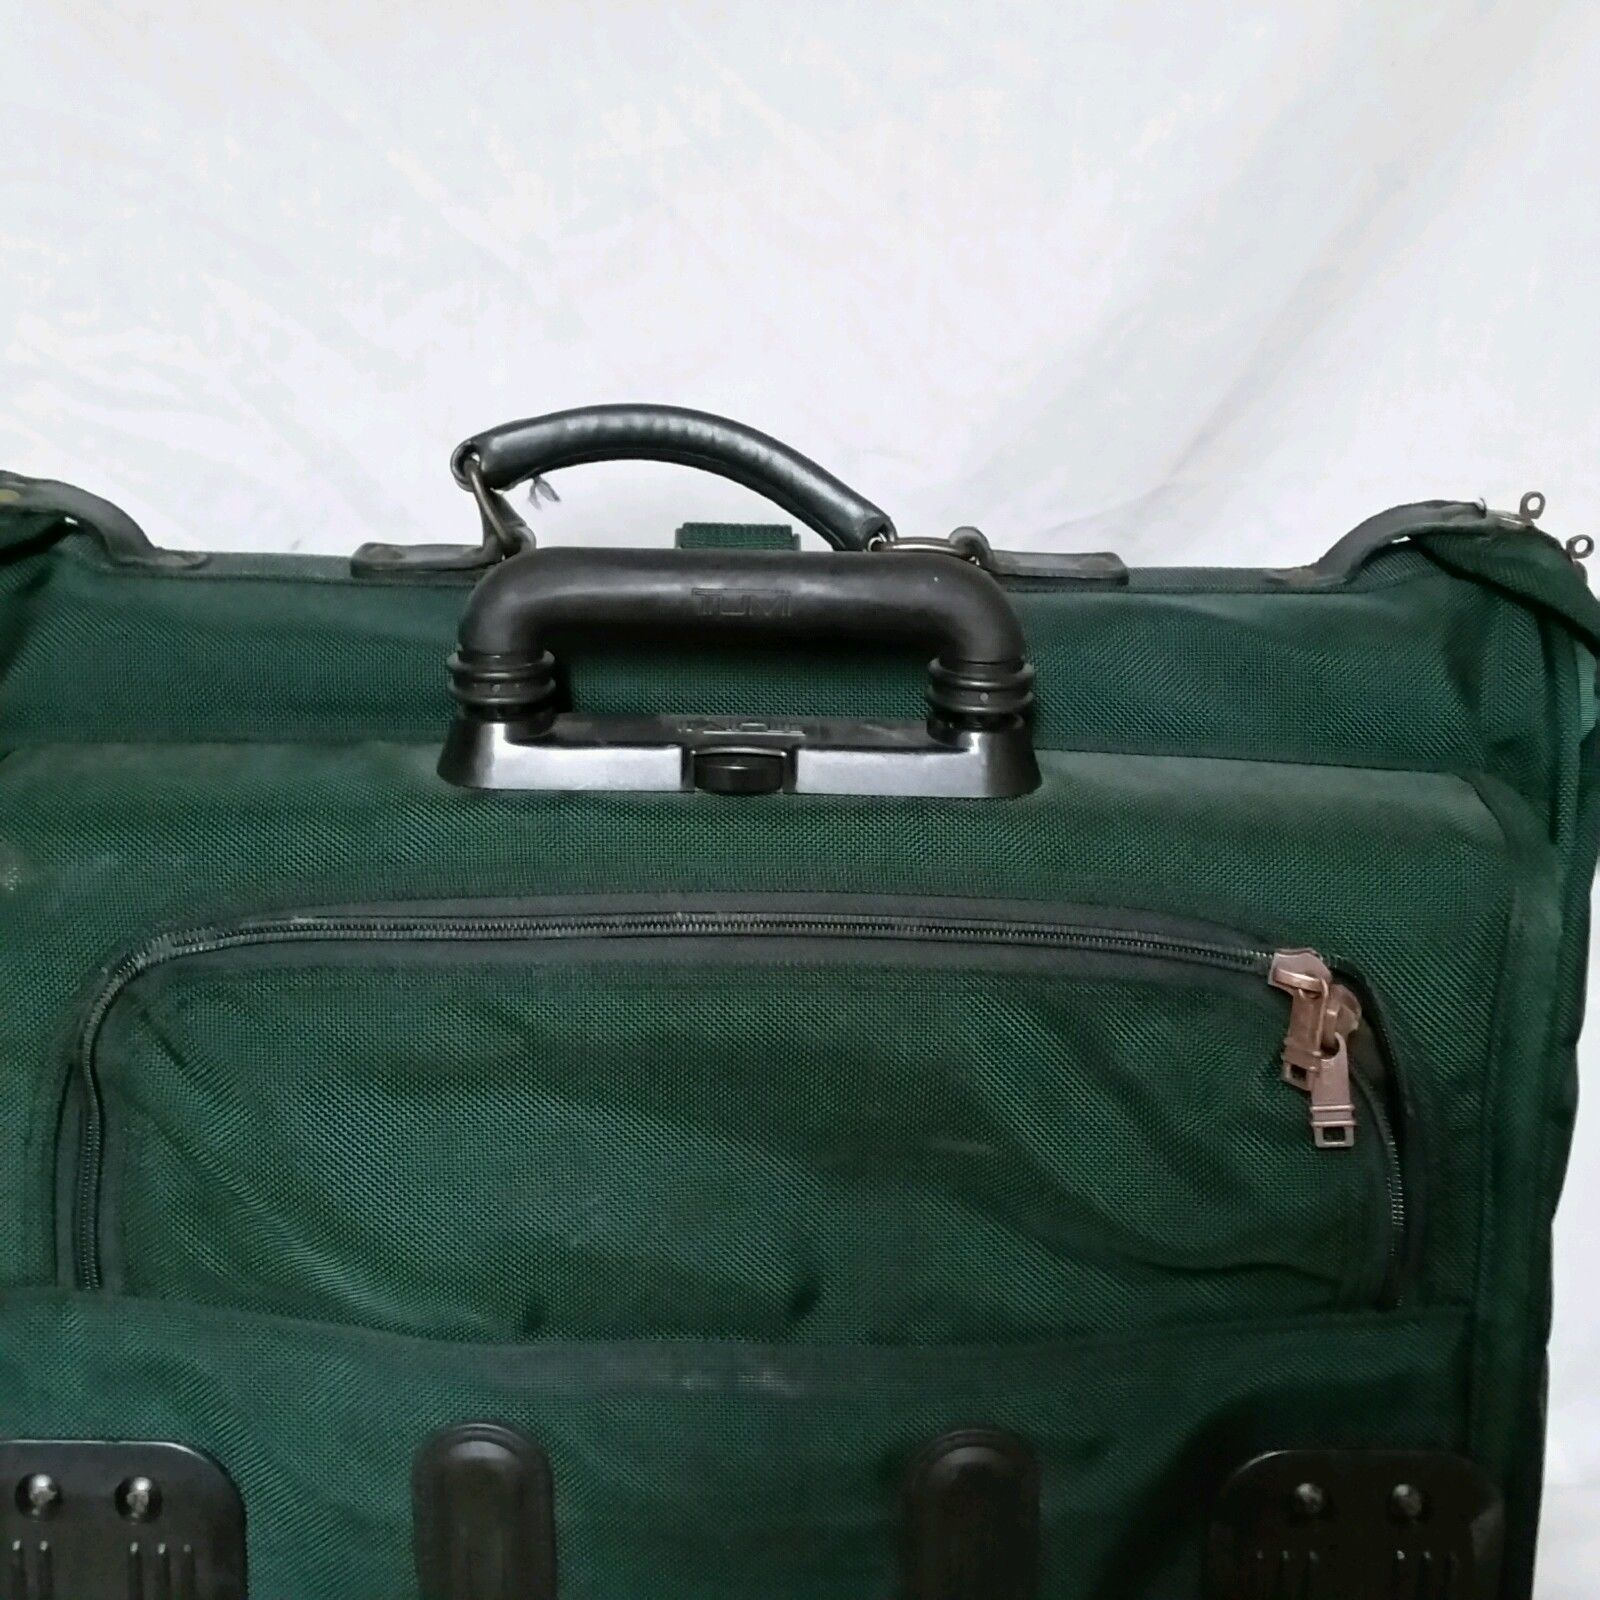 VTG Tumi Expandable Suitcase Bag Briefcase Gym Luggage Rolling Wheels Overnight